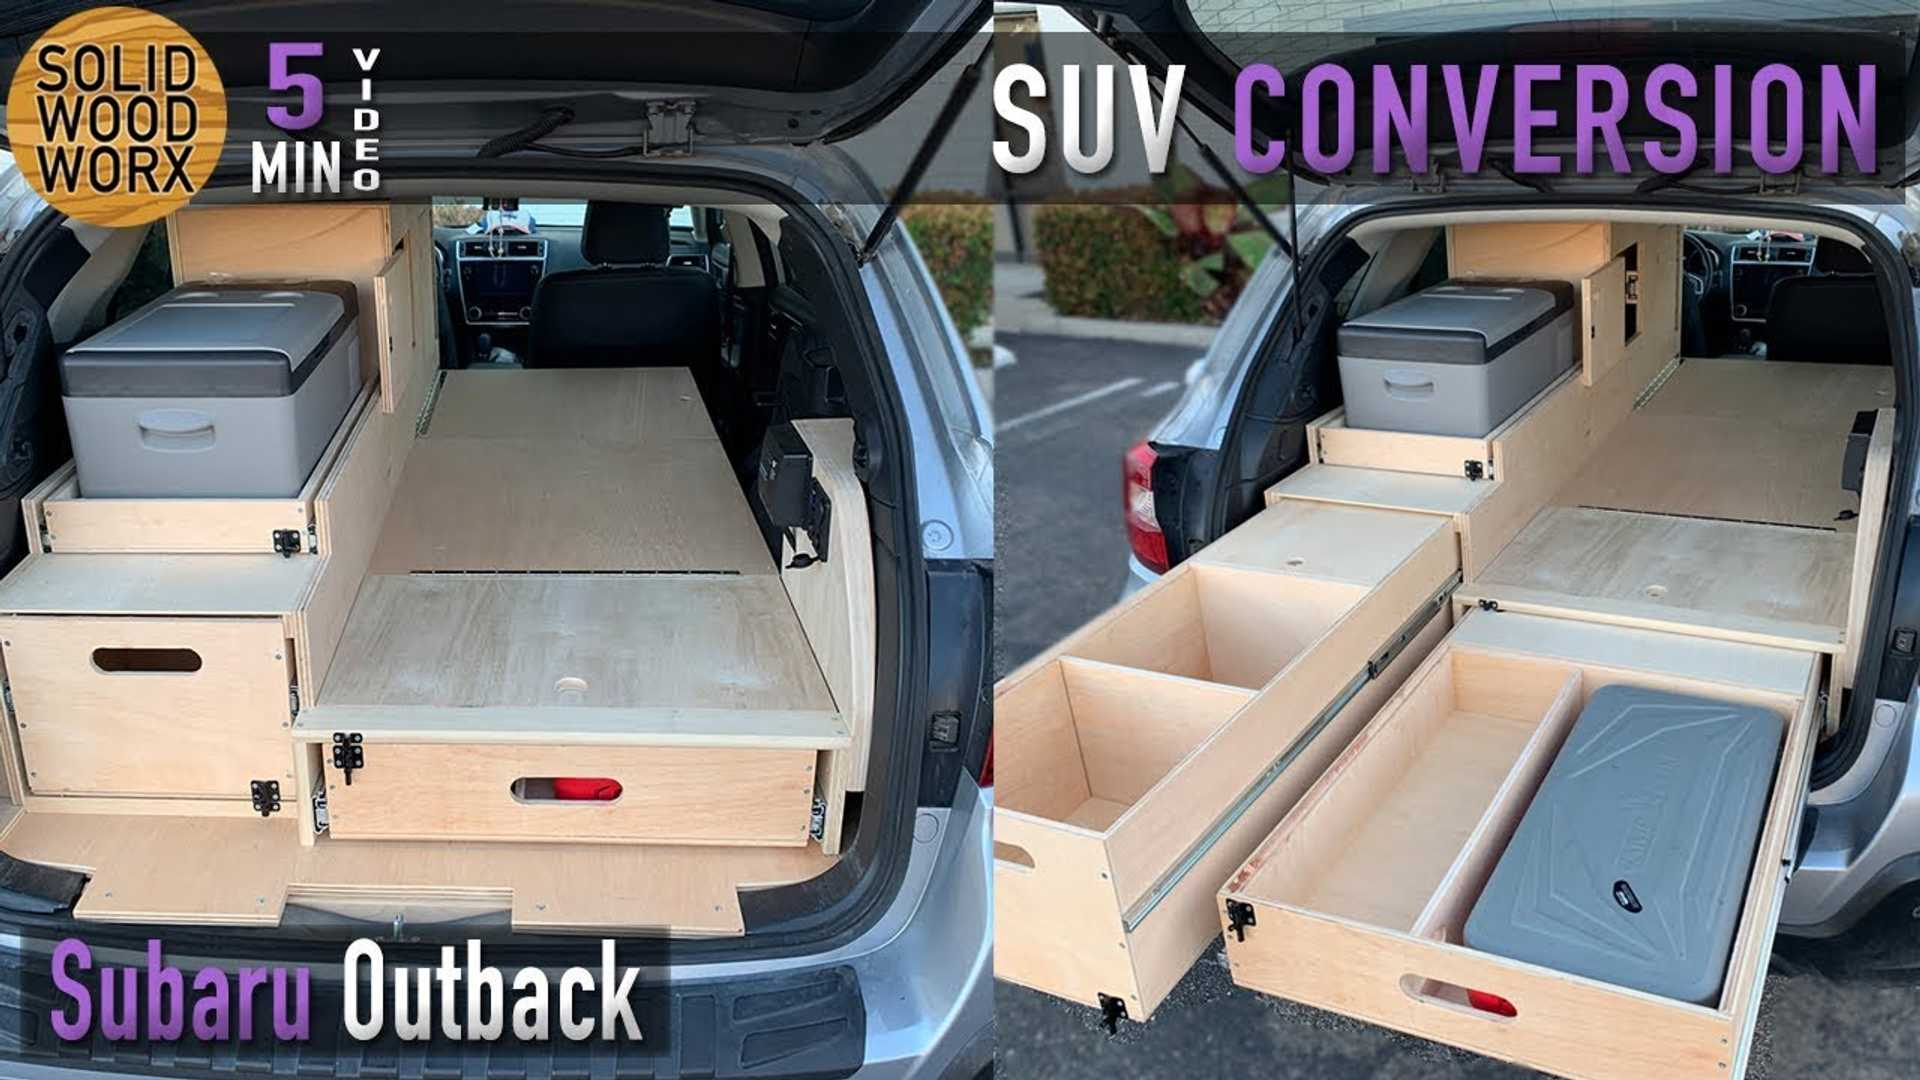 Lady Turns Subaru Outback Into Fully Contained Camper